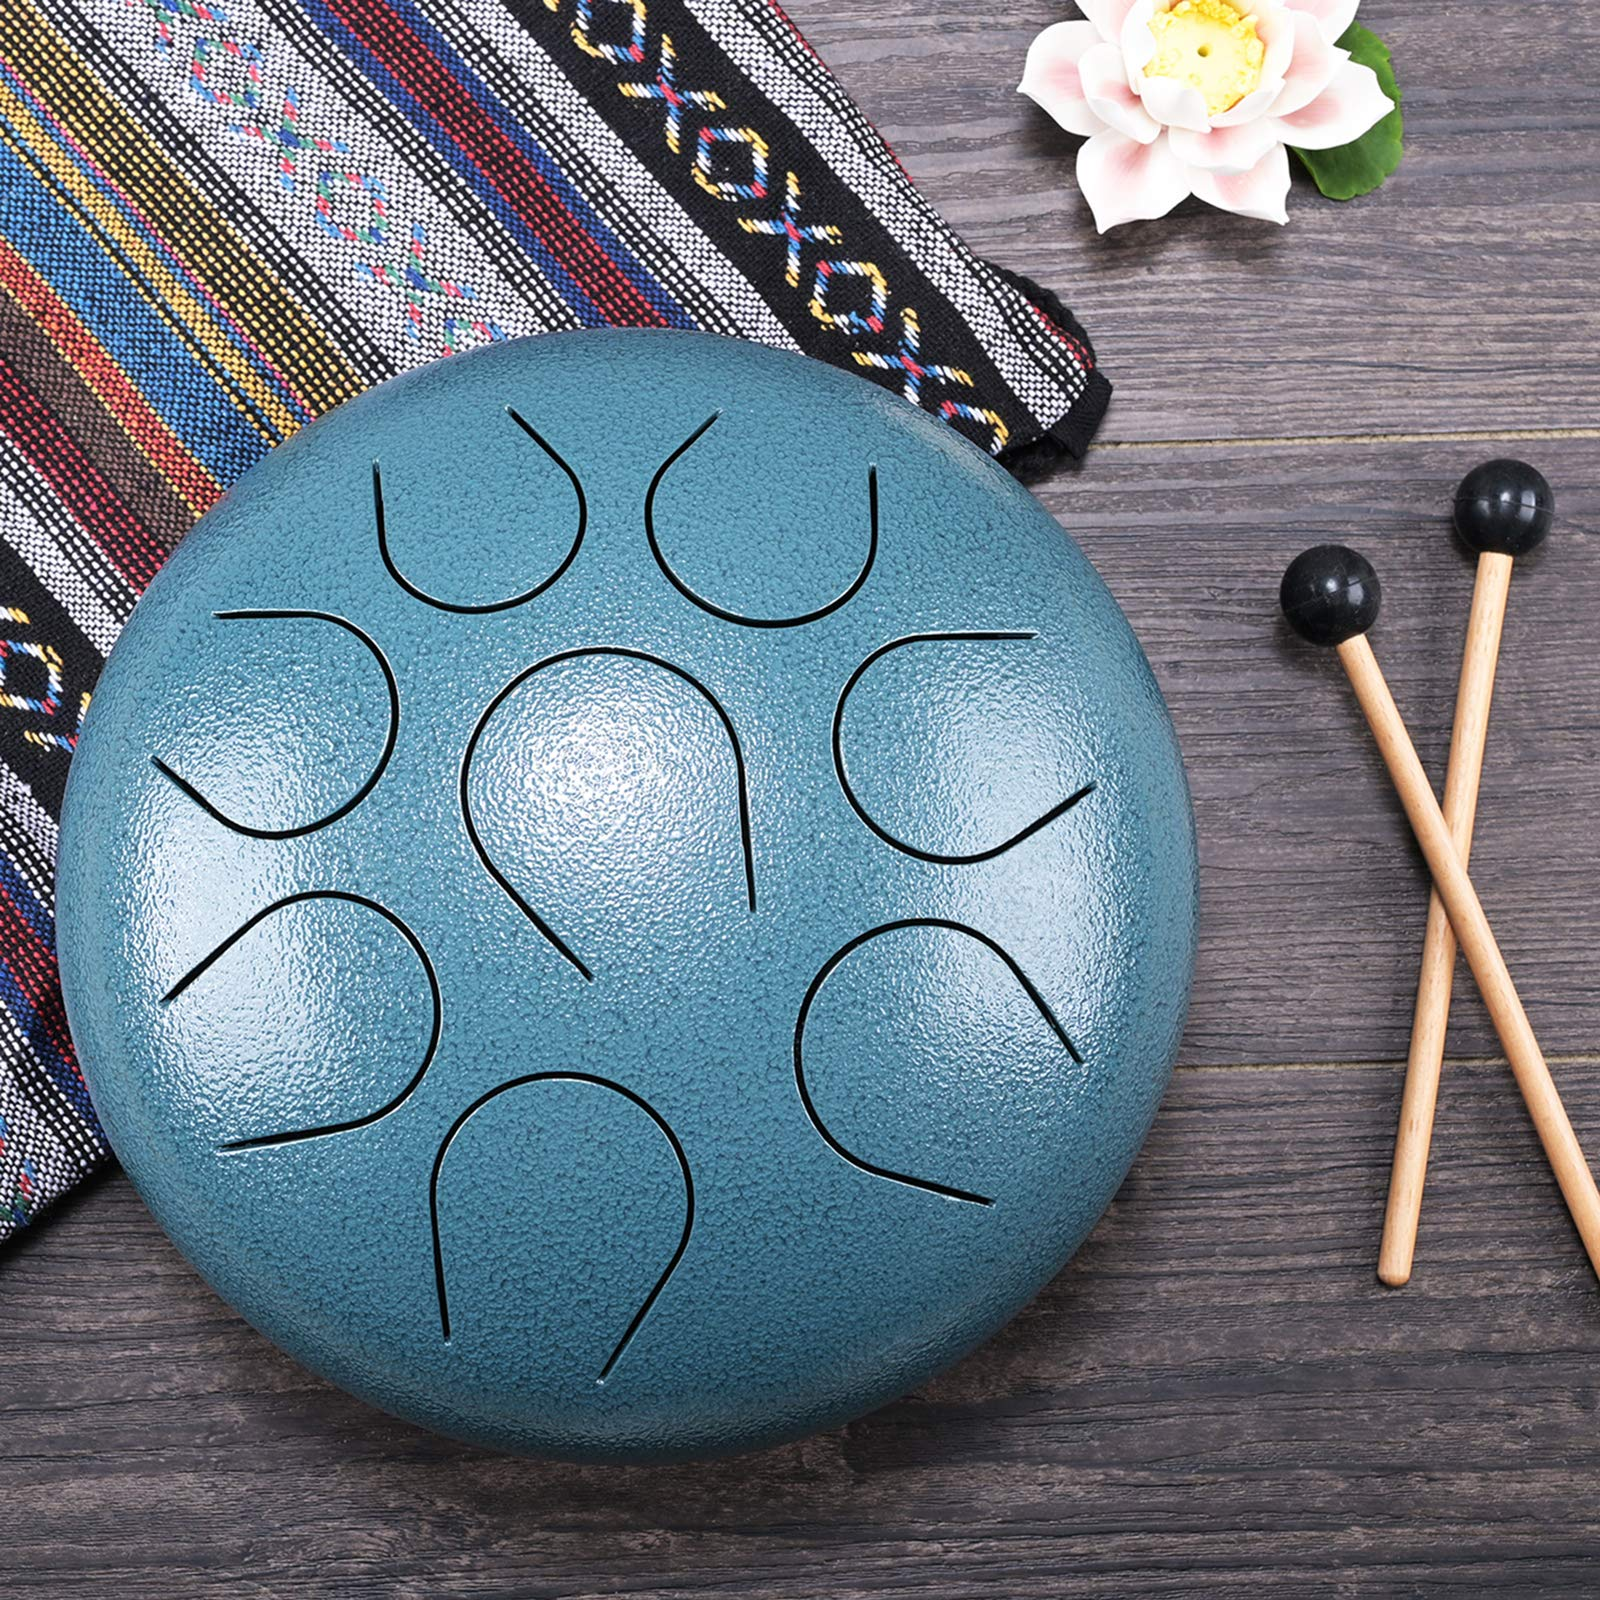 CVNC 8 Inch Dark Blue Textured Color Stainless Steel Tongue Drum Percussion Instrument Free Mallet & Bag Powerful Energy by CVNC